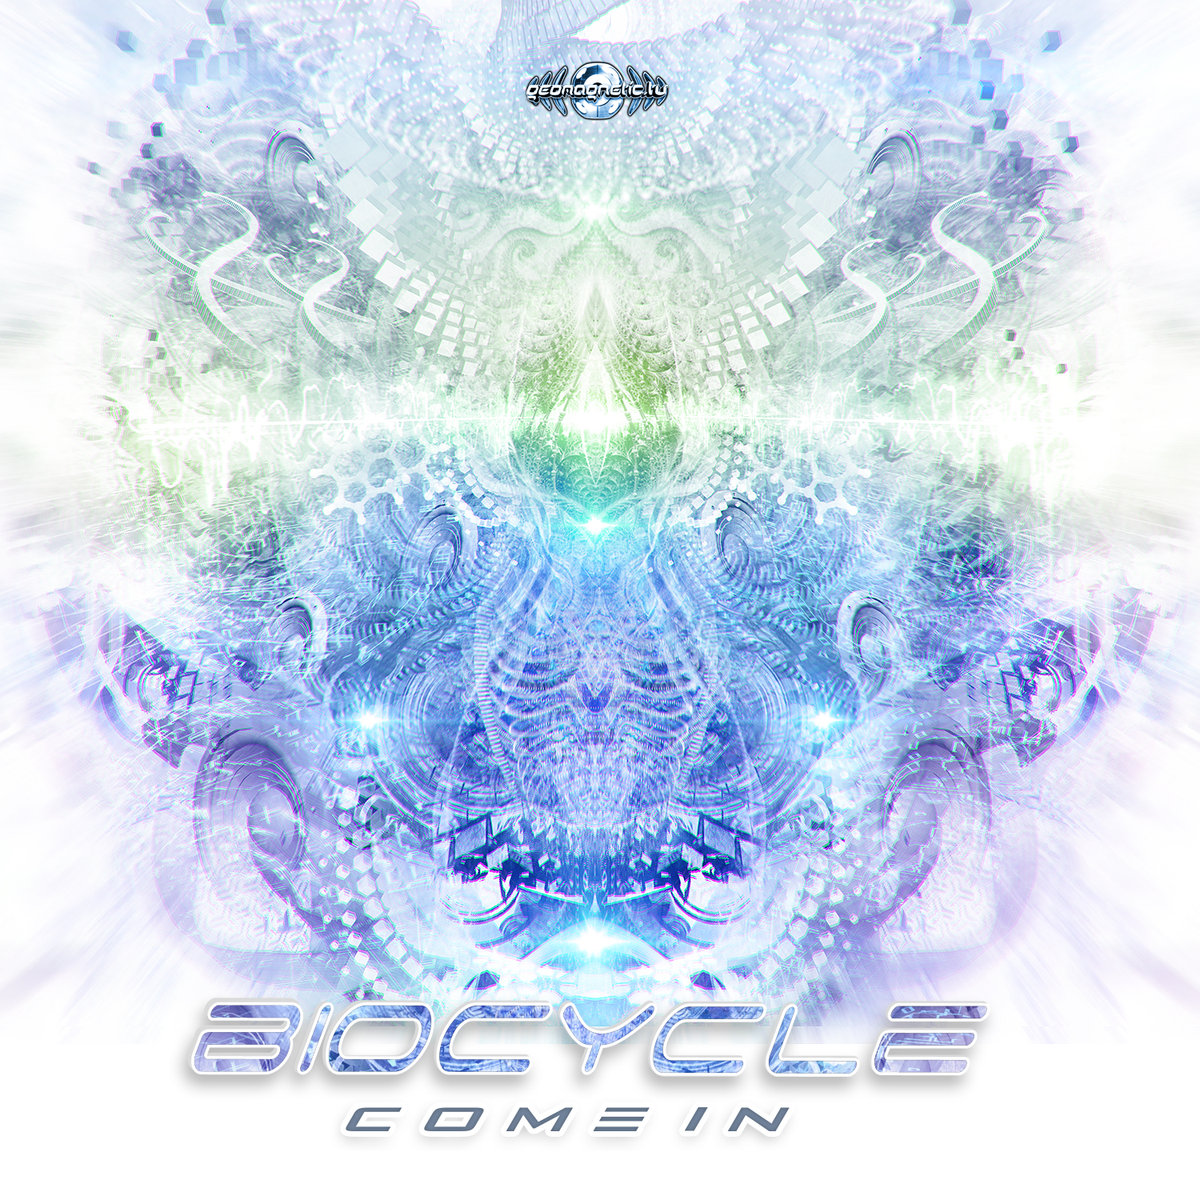 Biocycle - Real Connection @ 'Come In' album (electronic, geomagnetic)